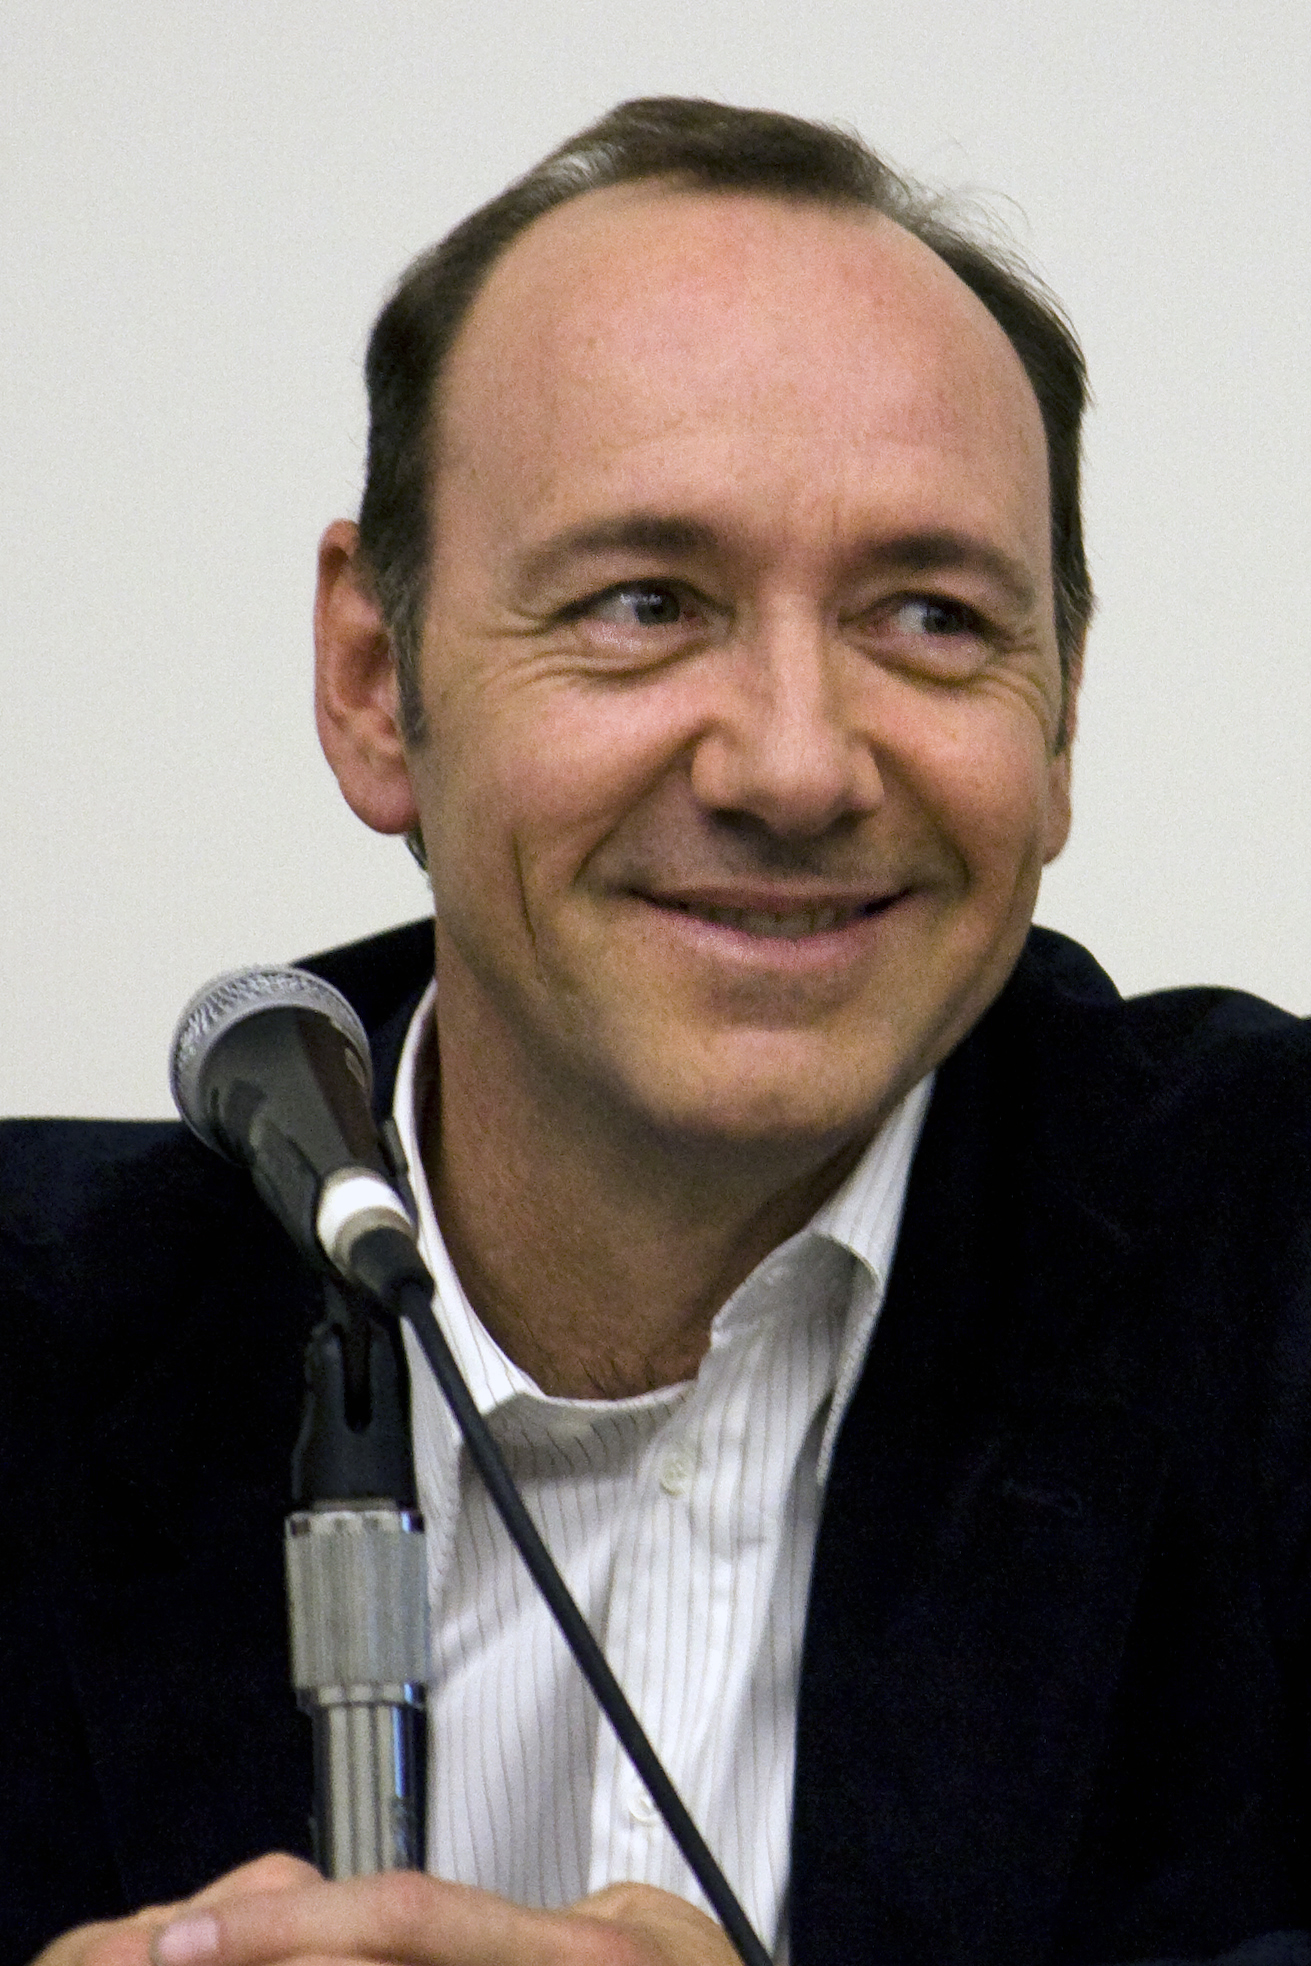 the life and career of the american actor kevin spacey Kevin spacey fowler, kbe (born july 26, 1959), better known as kevin spacey, is an american actor, film director, producer, screenwriter, and singerhe began his career as a stage actor.